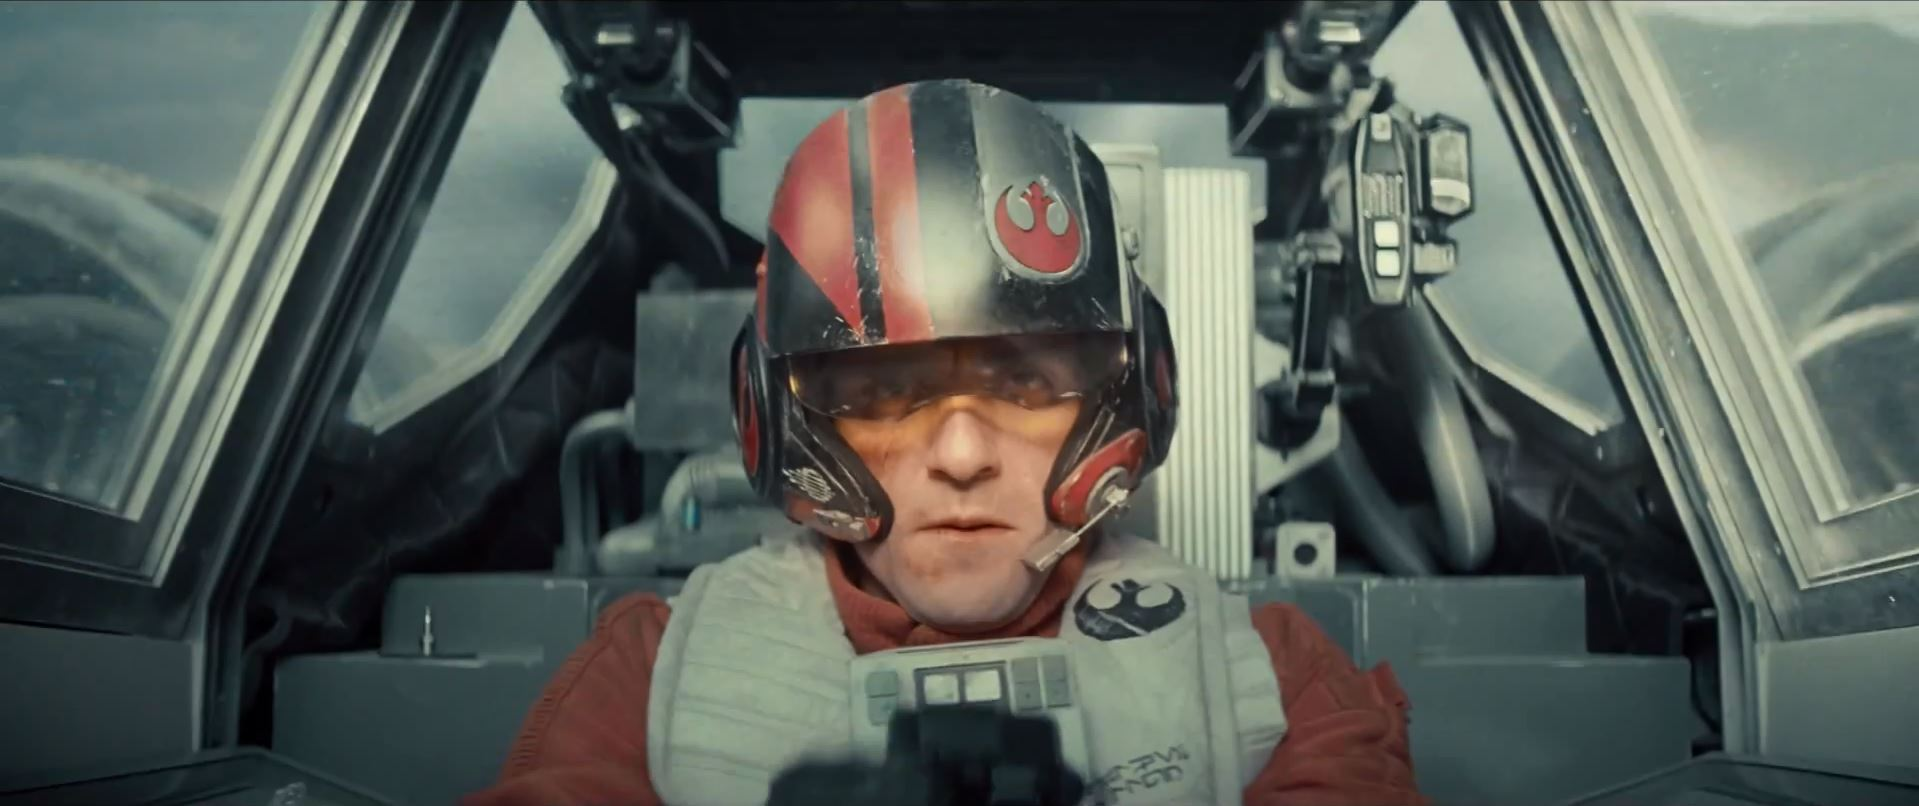 X-wing pilot -Star Wars Episode 7 trailer released